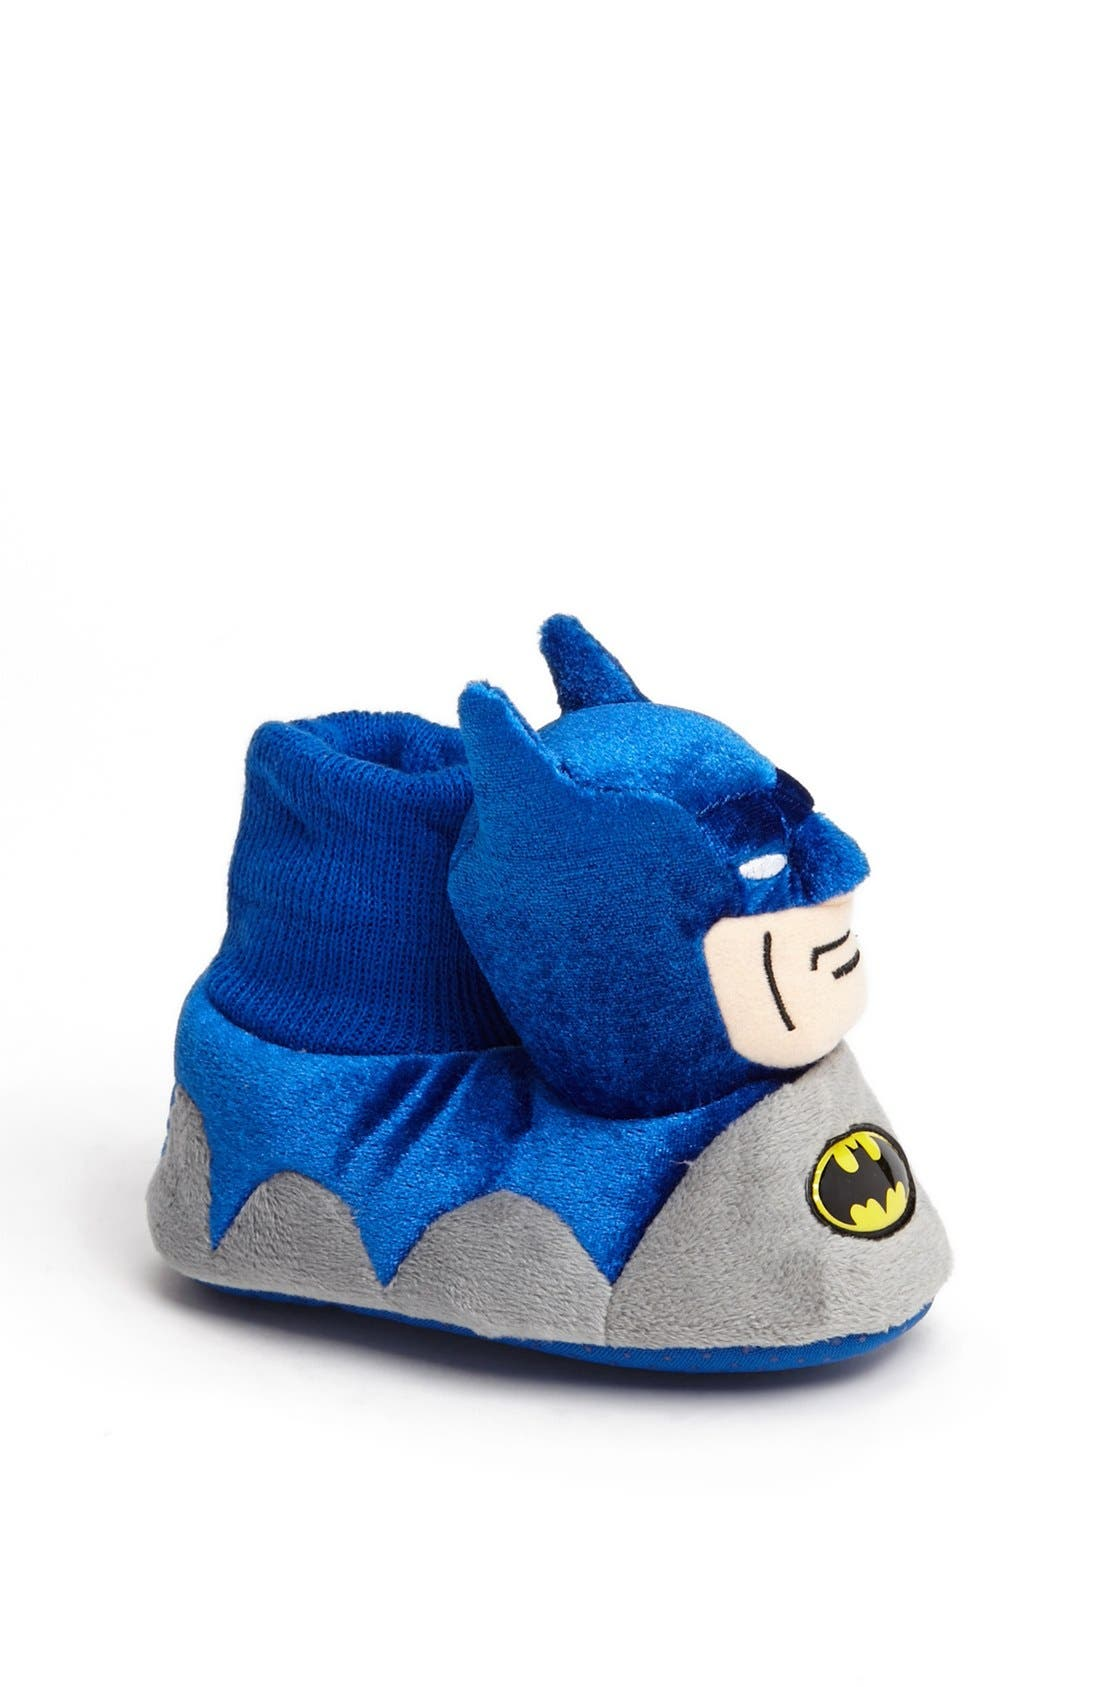 Alternate Image 1 Selected - Marvel 'Batman' Slipper (Walker & Toddler)